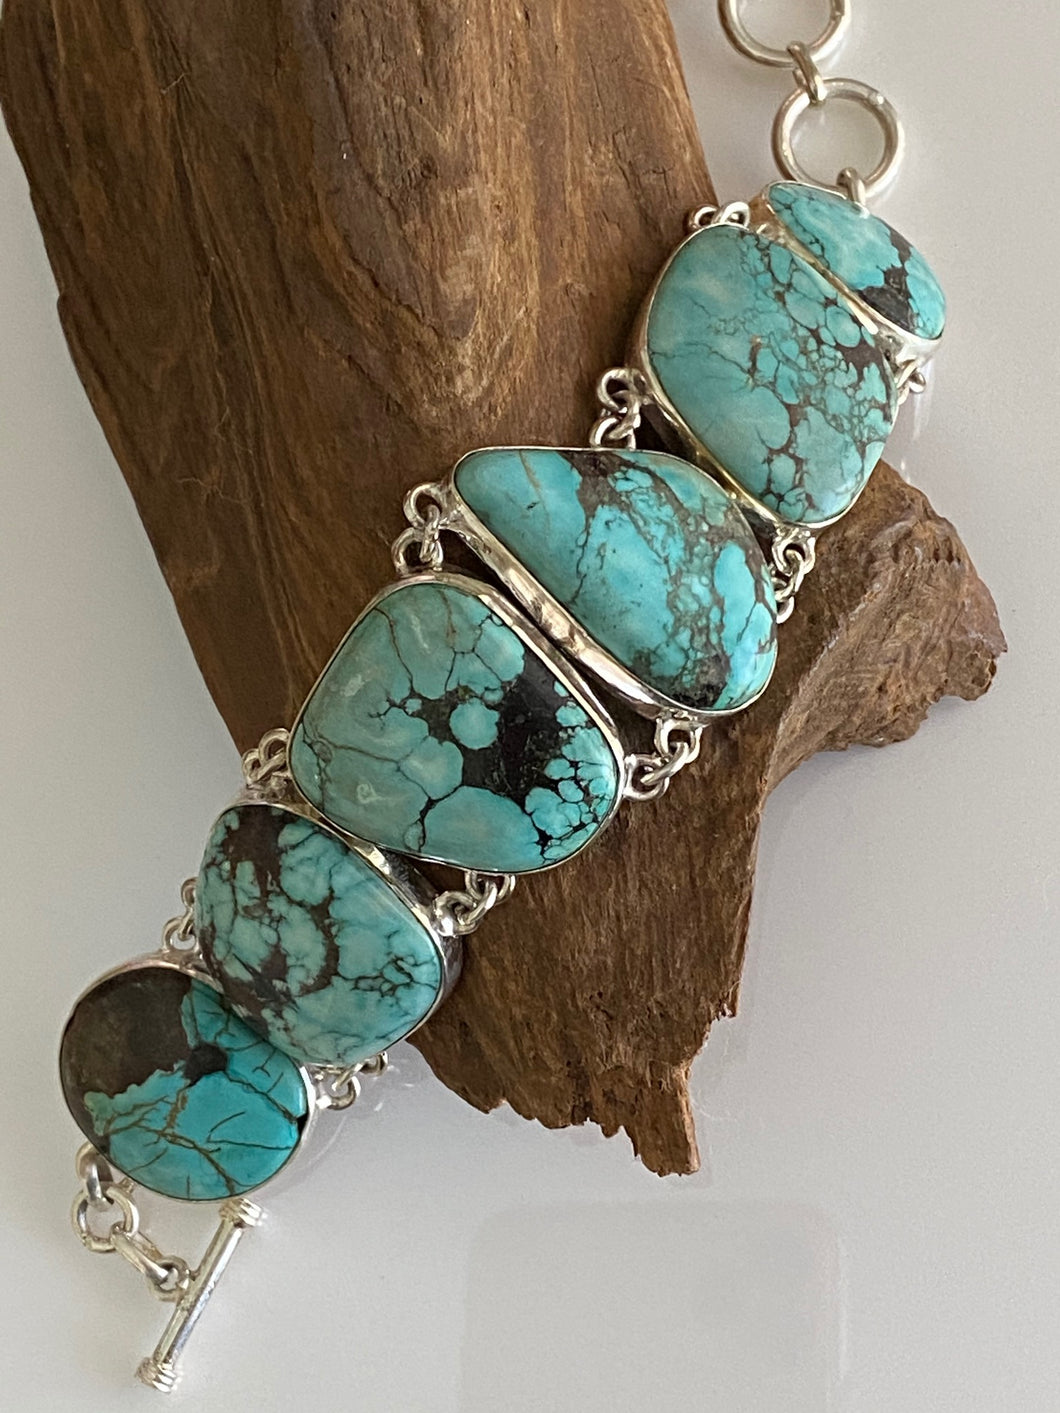 One of the KInd Turquoise Bracelet  Handcrfted in India 925 Sterling Silver